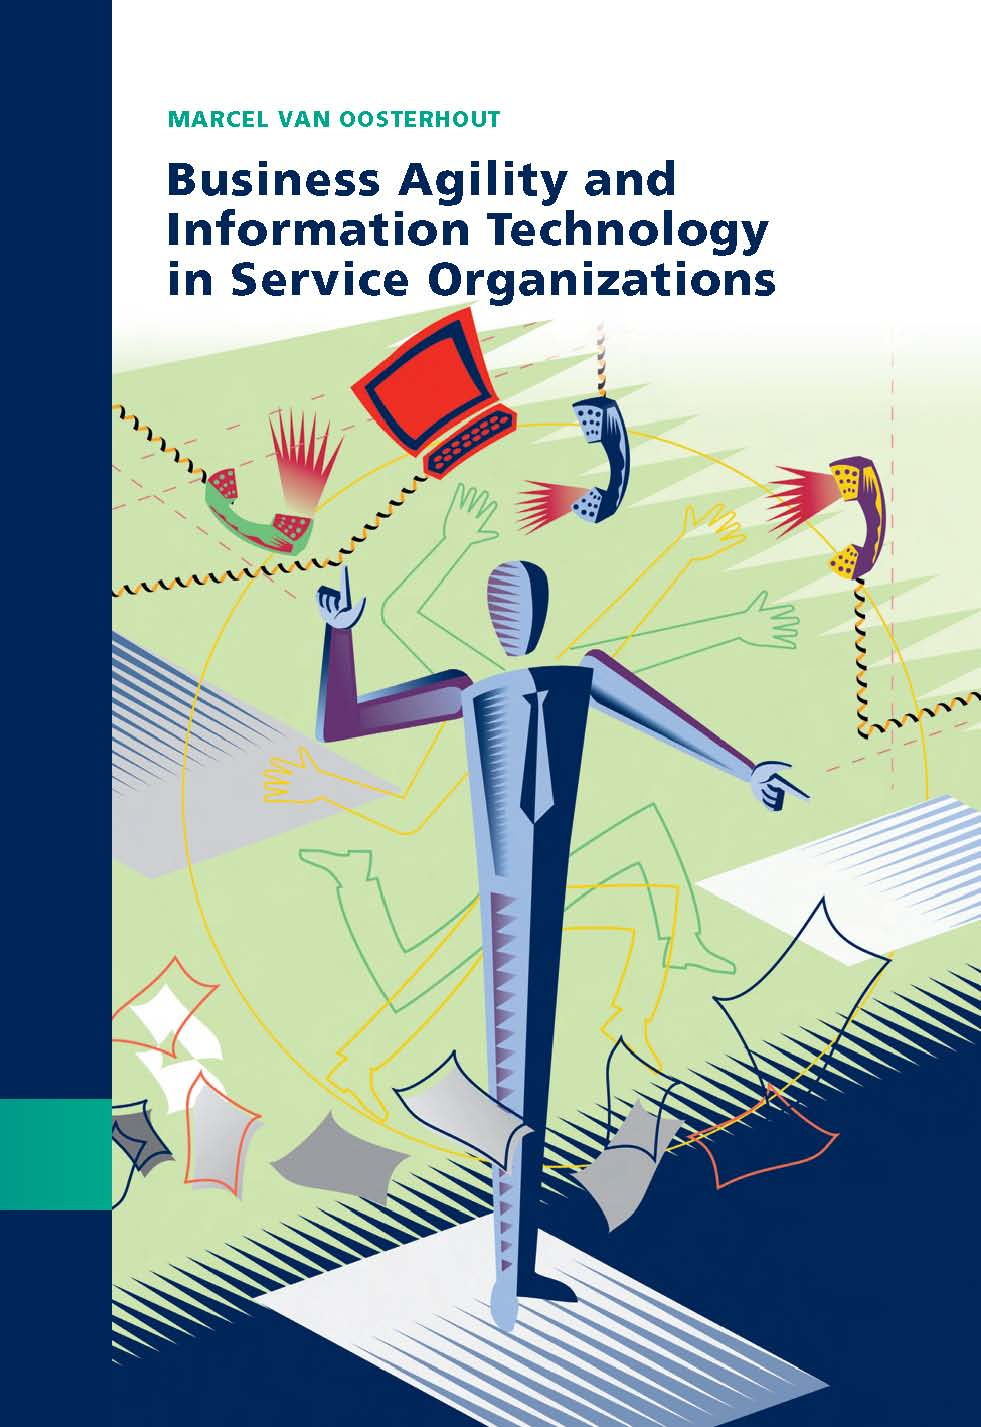 Business Agility and Information Technology in Service Organizations